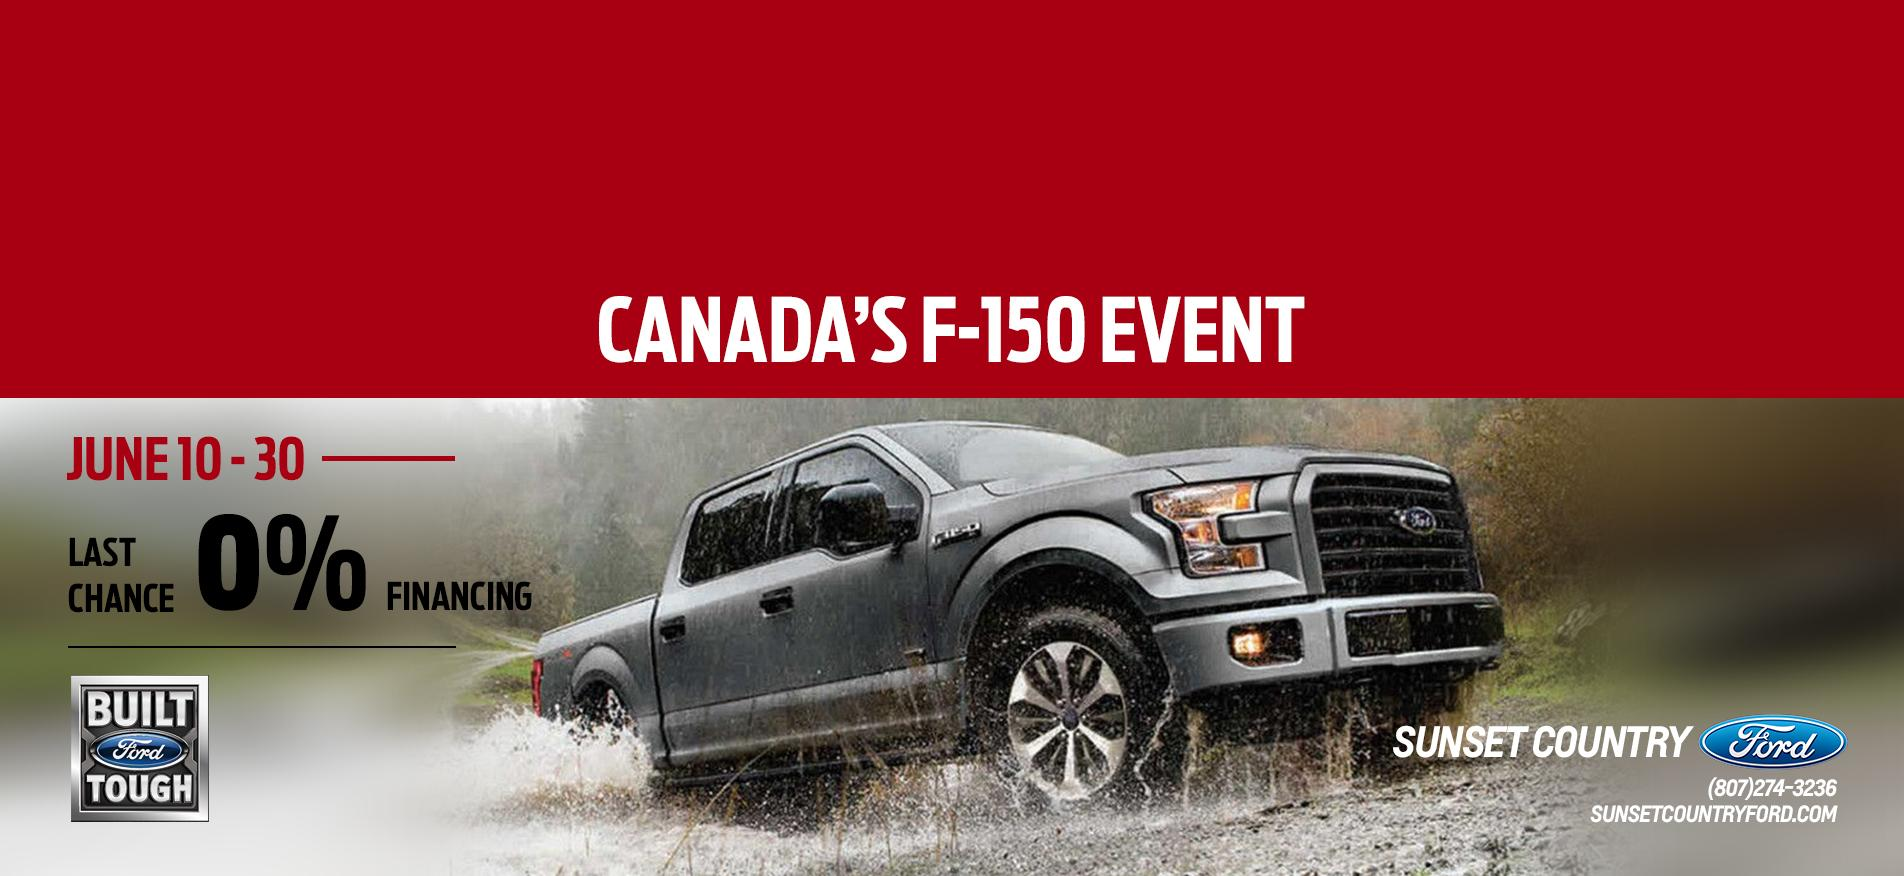 F-150 event 0% Sunset Ford